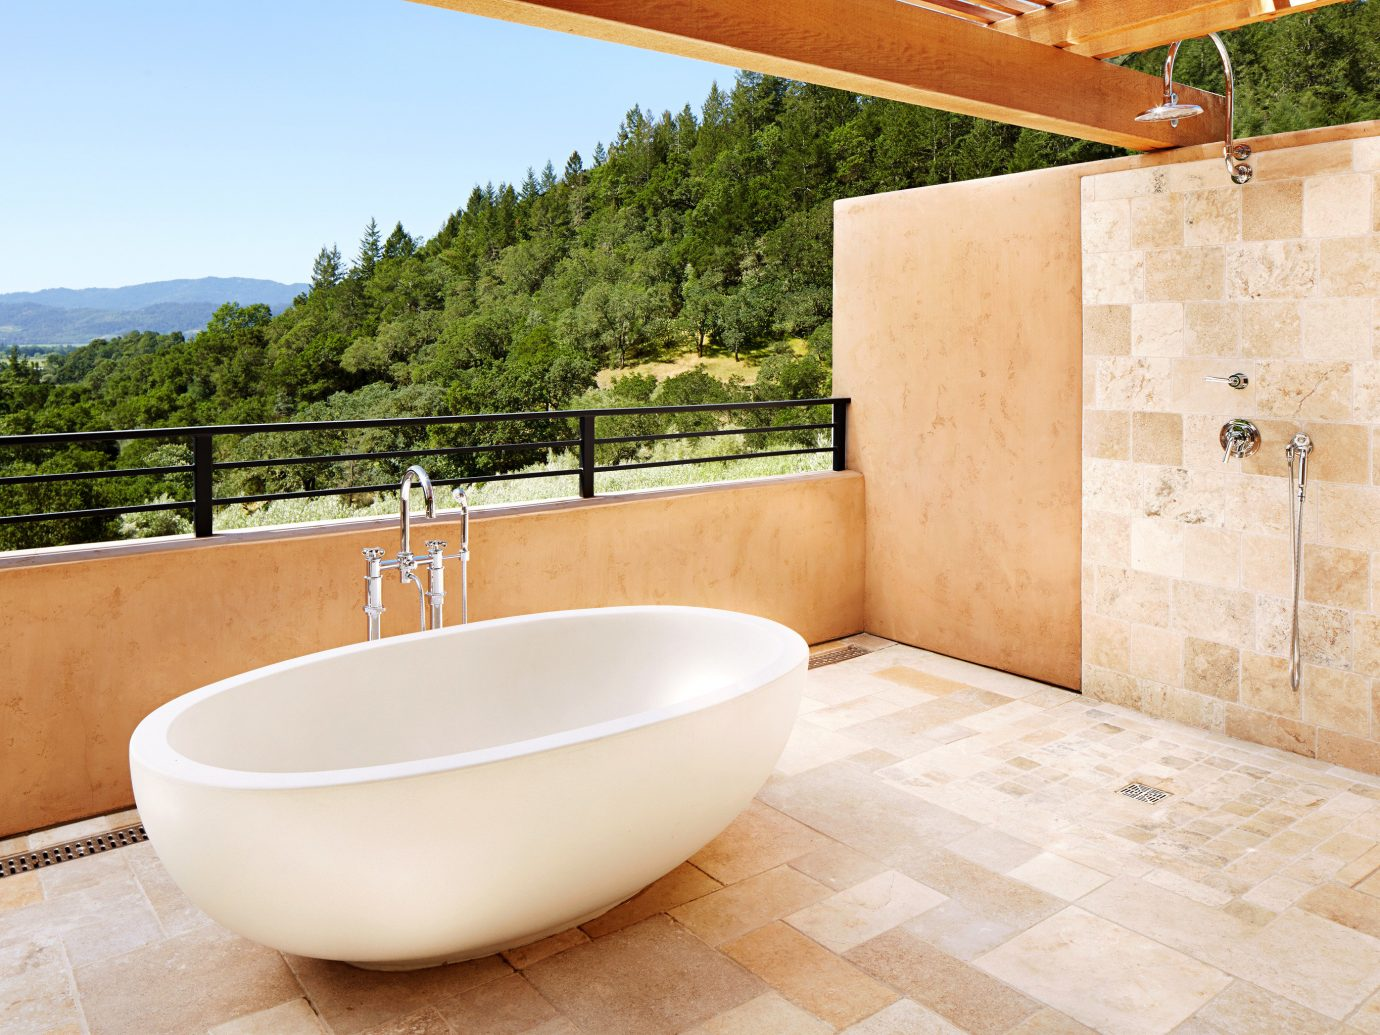 Bath Cultural Elegant Grounds Honeymoon Hotels Luxury Mountains Natural wonders Outdoor Activities Outdoors Resort Romance Romantic Scenic views Spa Vineyard Winery room property swimming pool bathtub floor plumbing fixture bidet bathroom estate flooring sink tub stone tiled